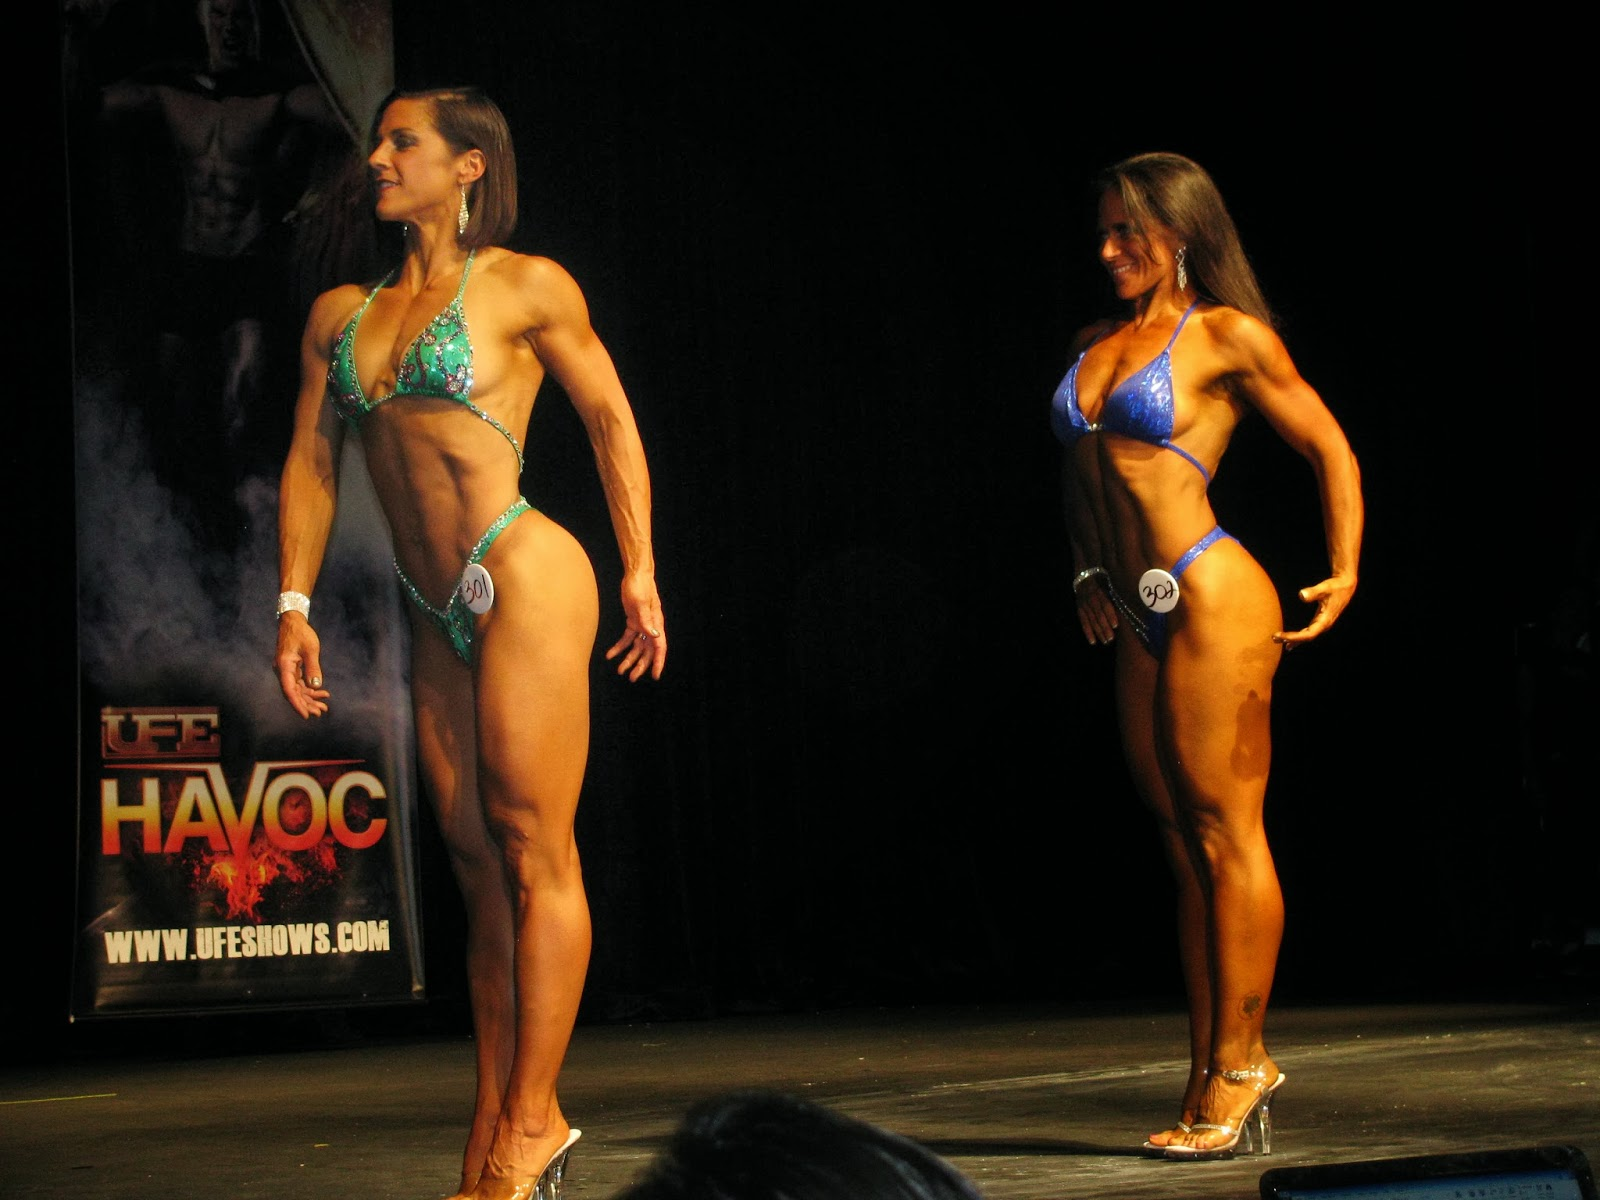 Havoc east coast bikini contest photos